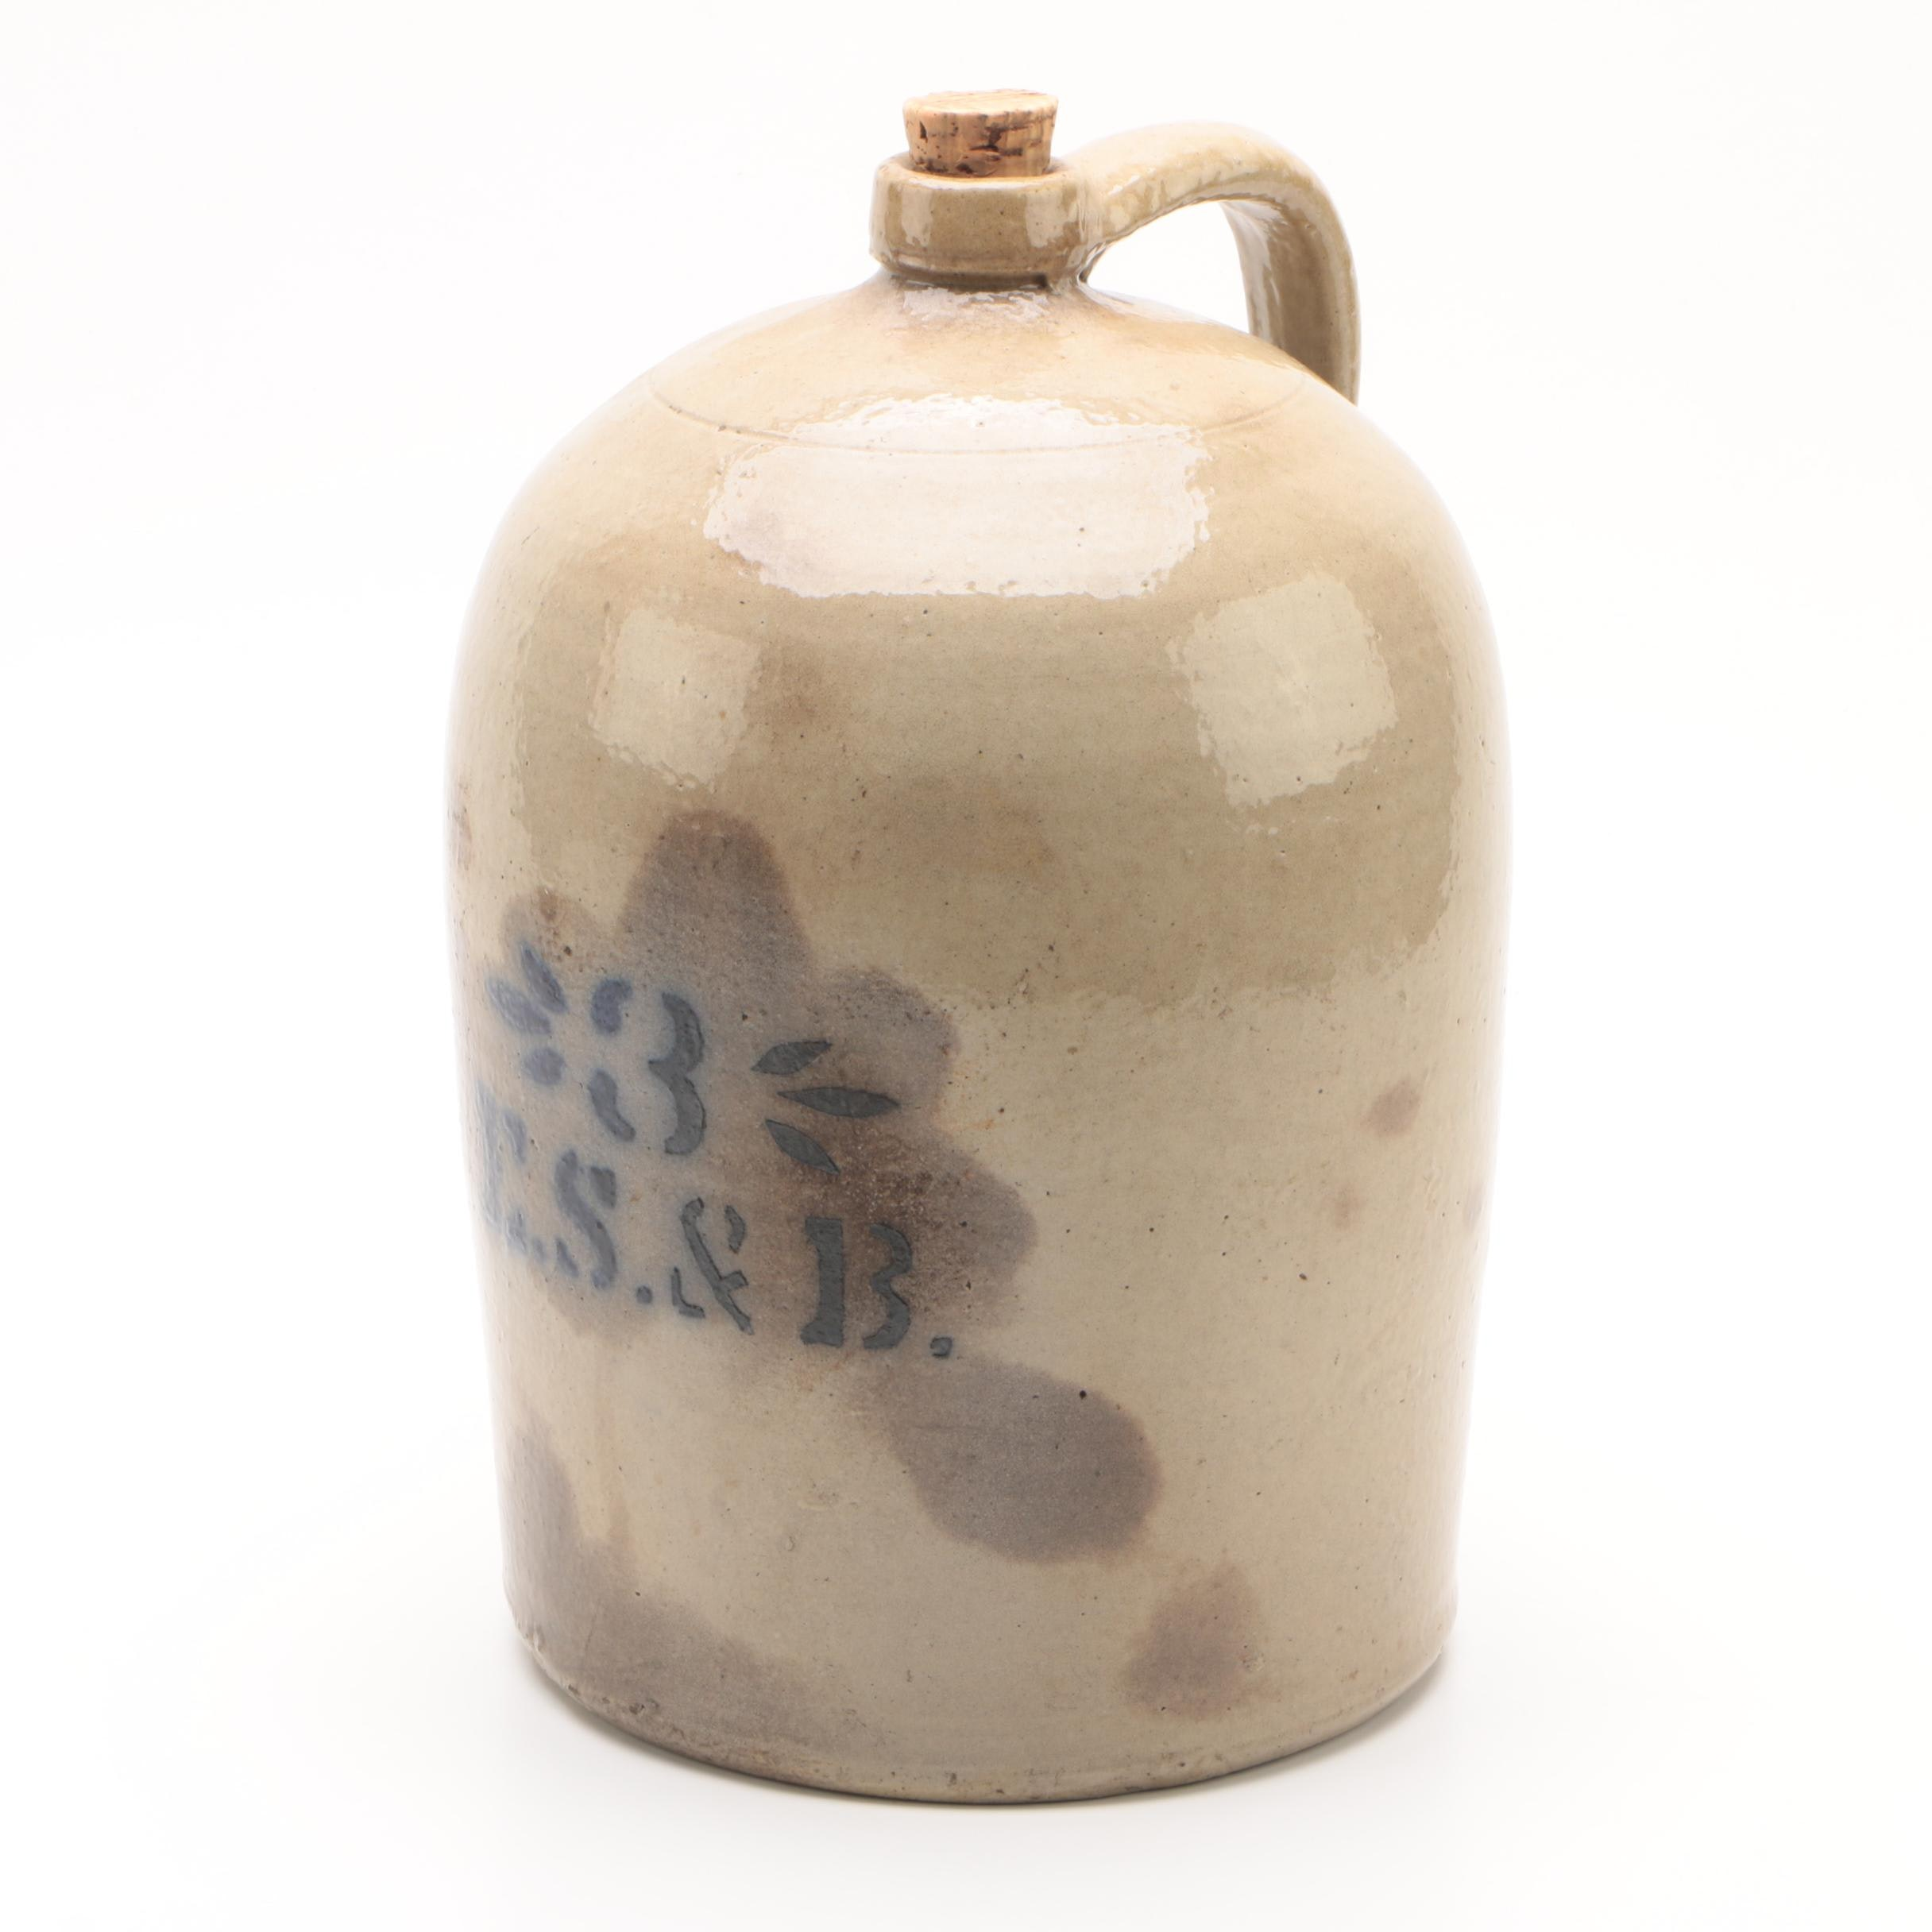 Elverson, Sherwood & Barker Three-Gallon Stoneware Jug